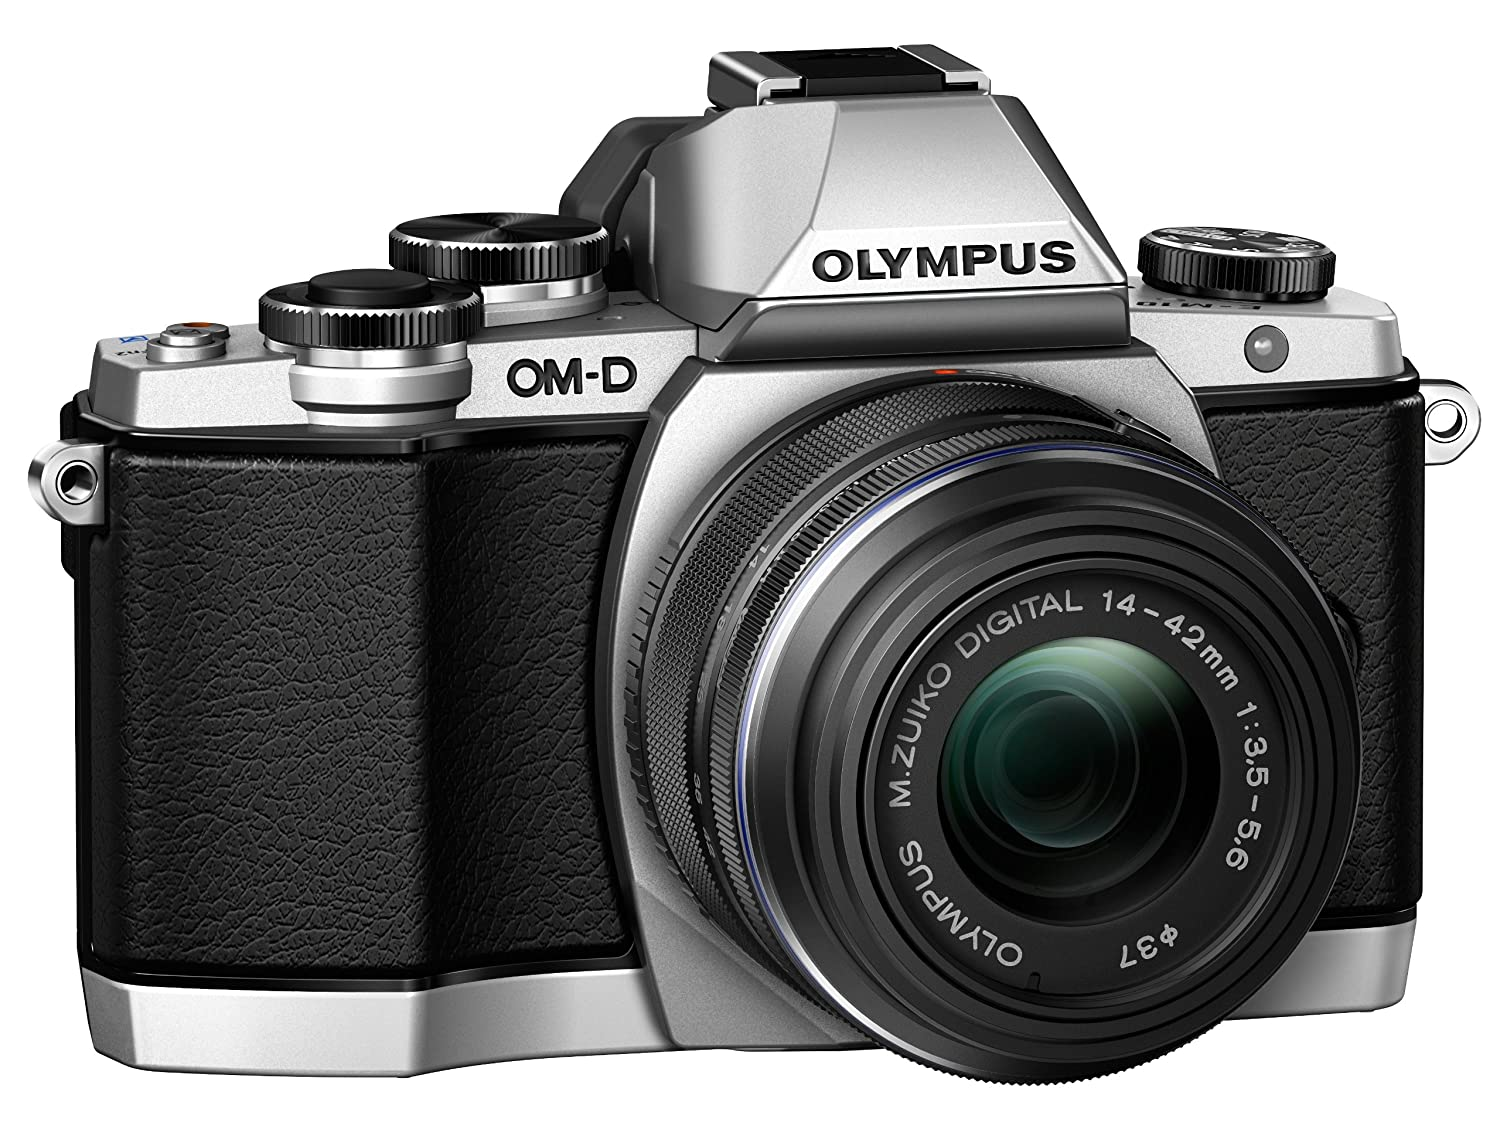 Top 10 Best Mirrorless Camera (2020 Reviews & Buying Guide) 3